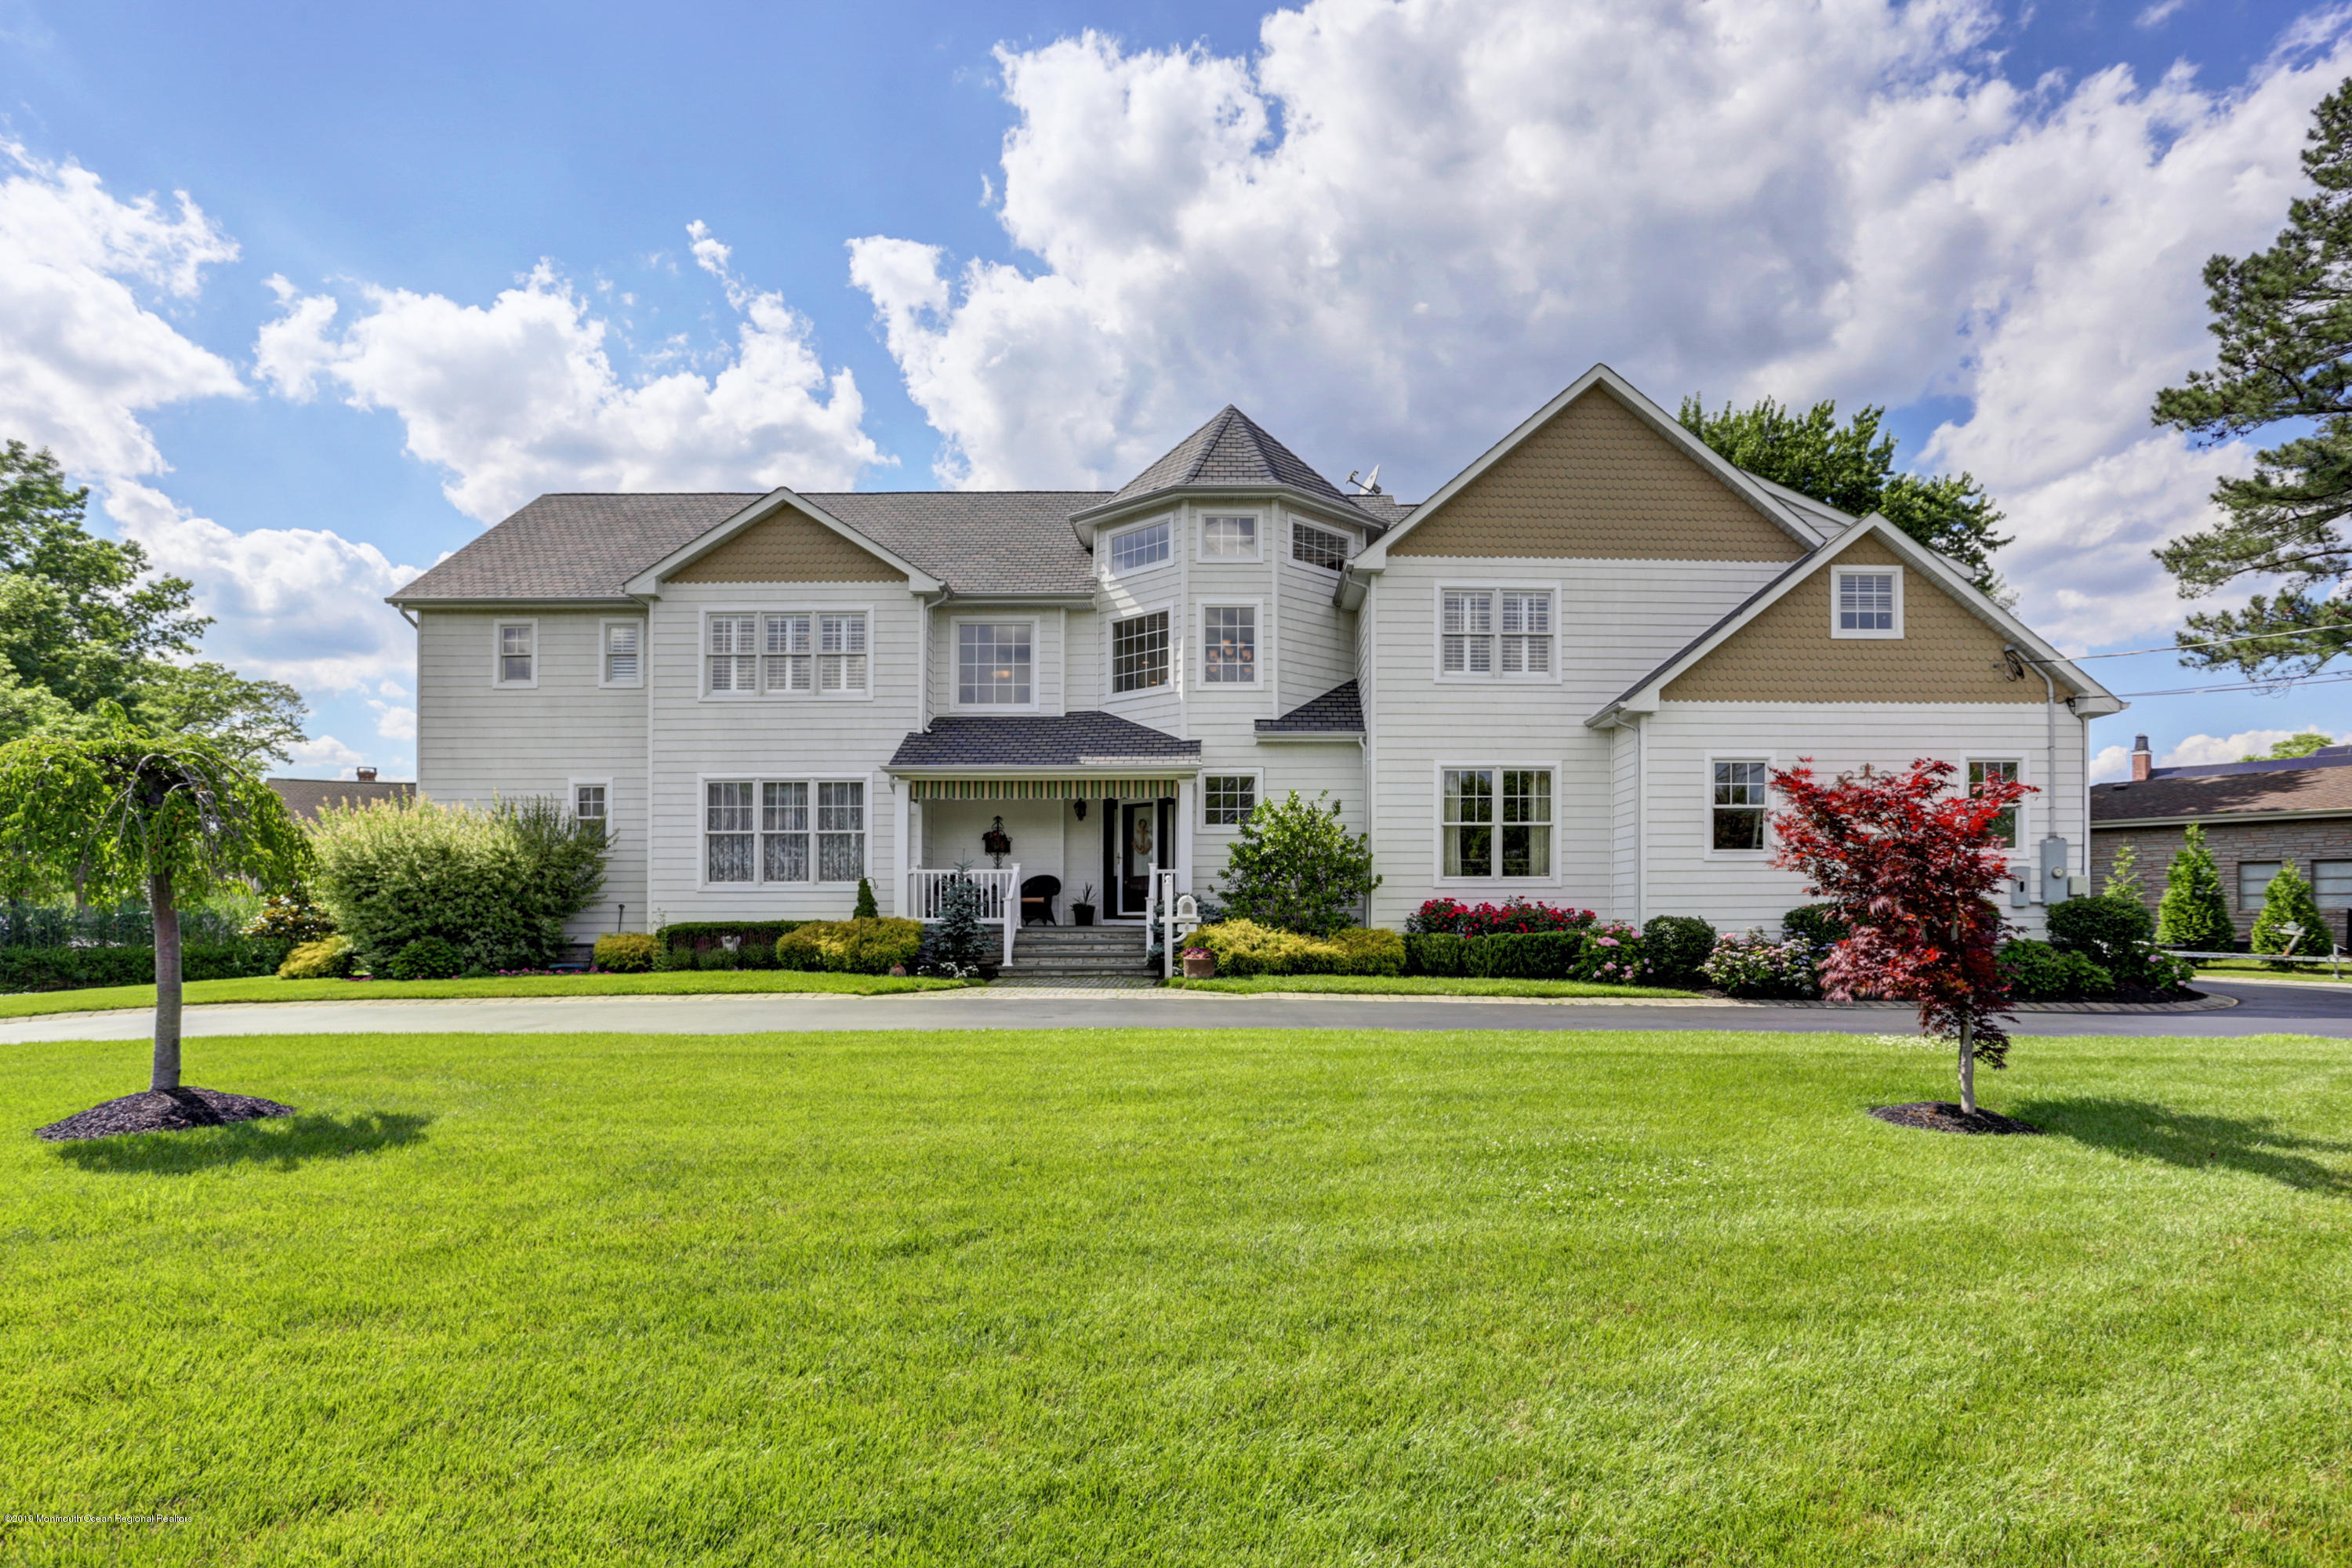 Photo of 6 Bayview Place, Oceanport, NJ 07757